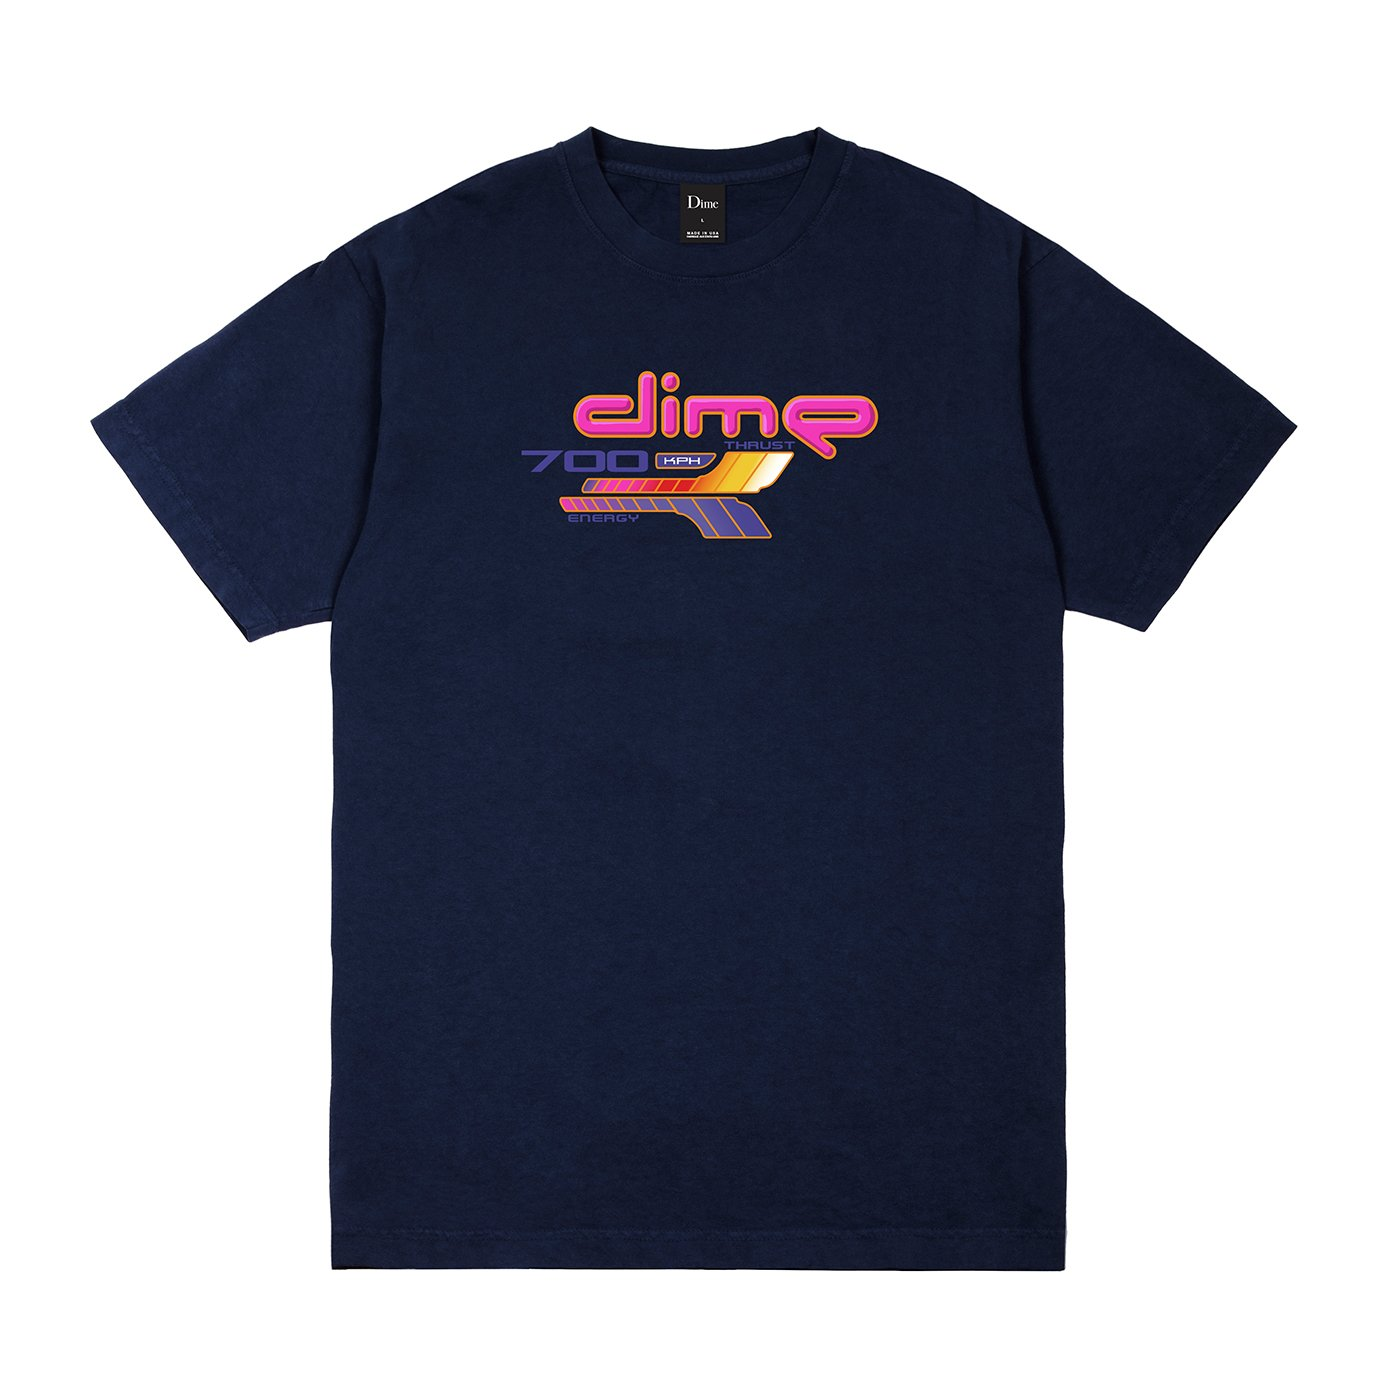 Dime 700 Tee Product Photo #1